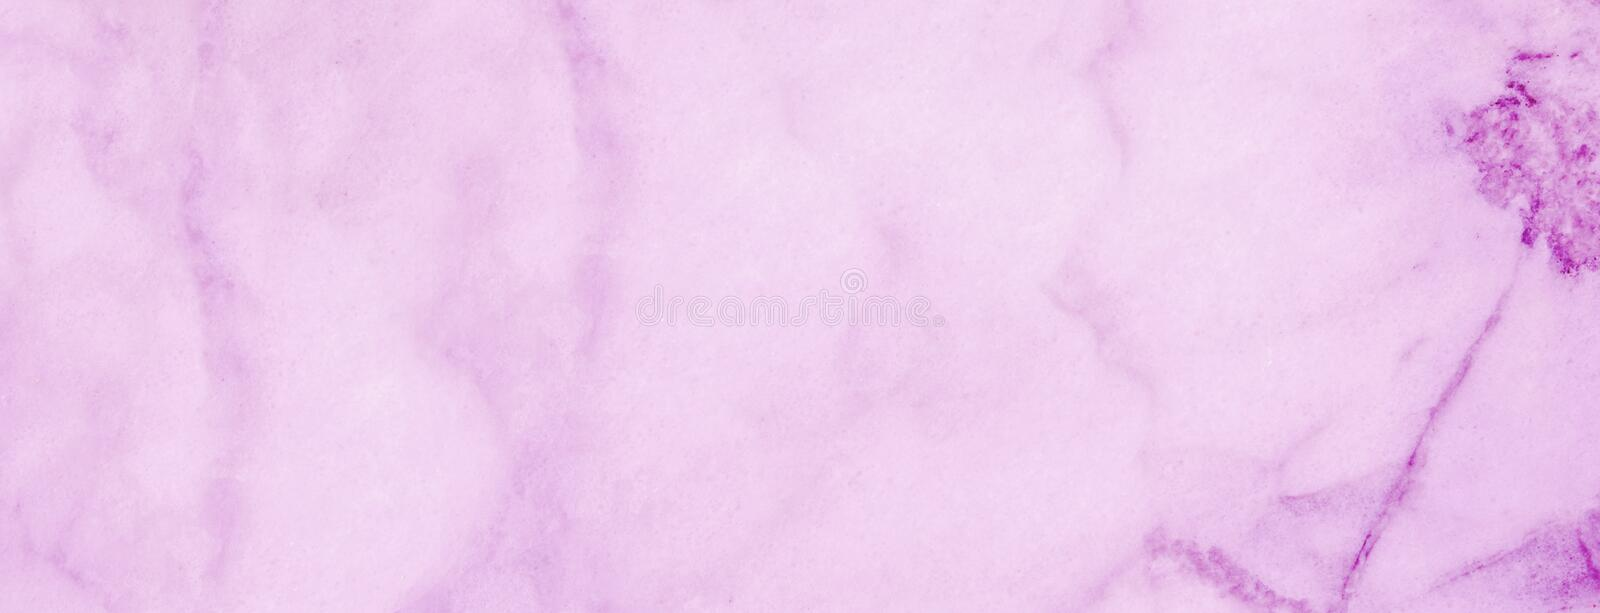 Ultra violet Marble surface background royalty free stock photos